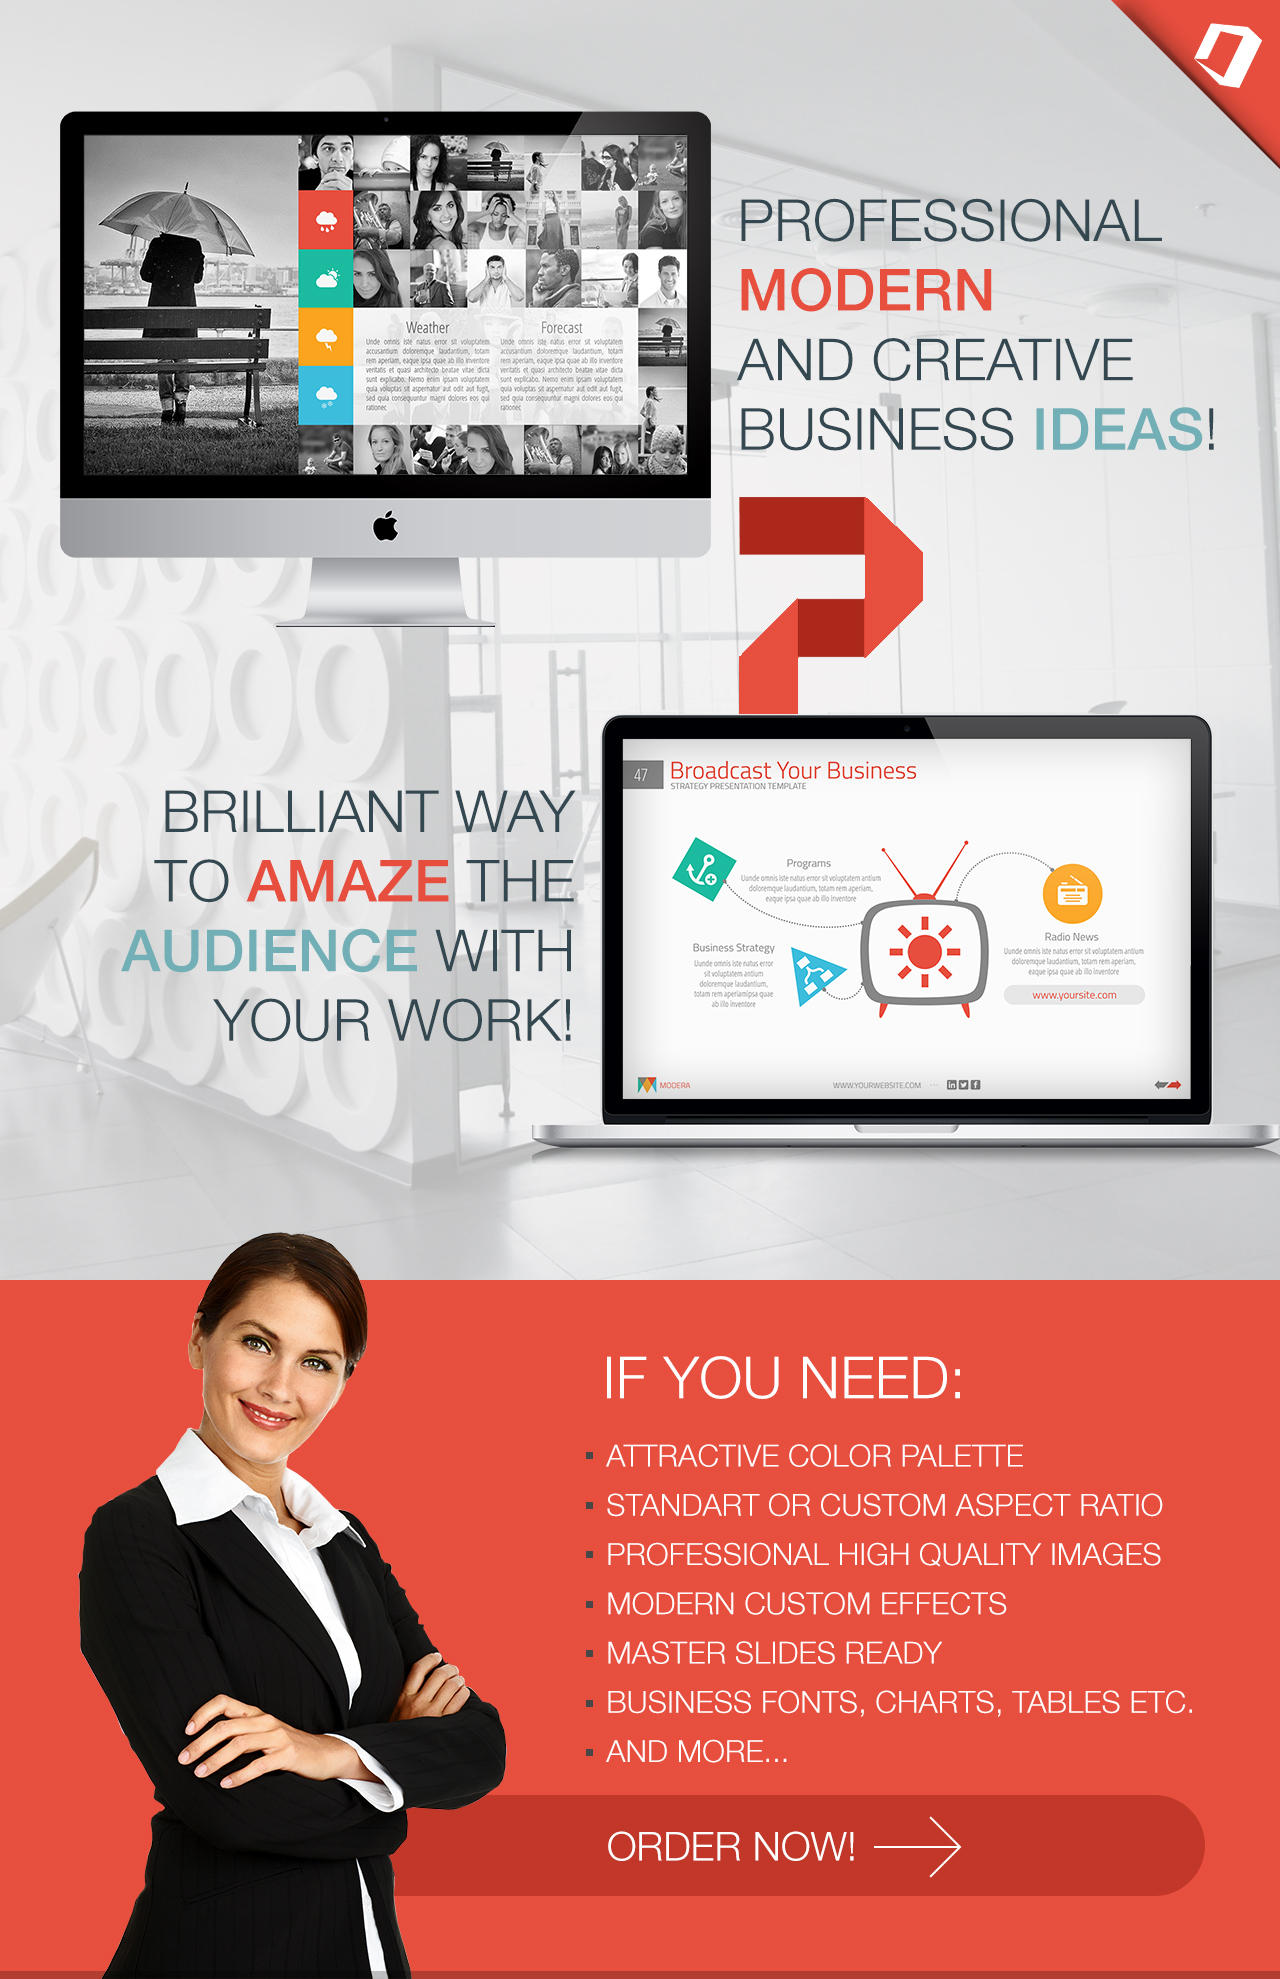 Modern & Attractive Powerpoint Design - Working Solution by Bandidos - 63198